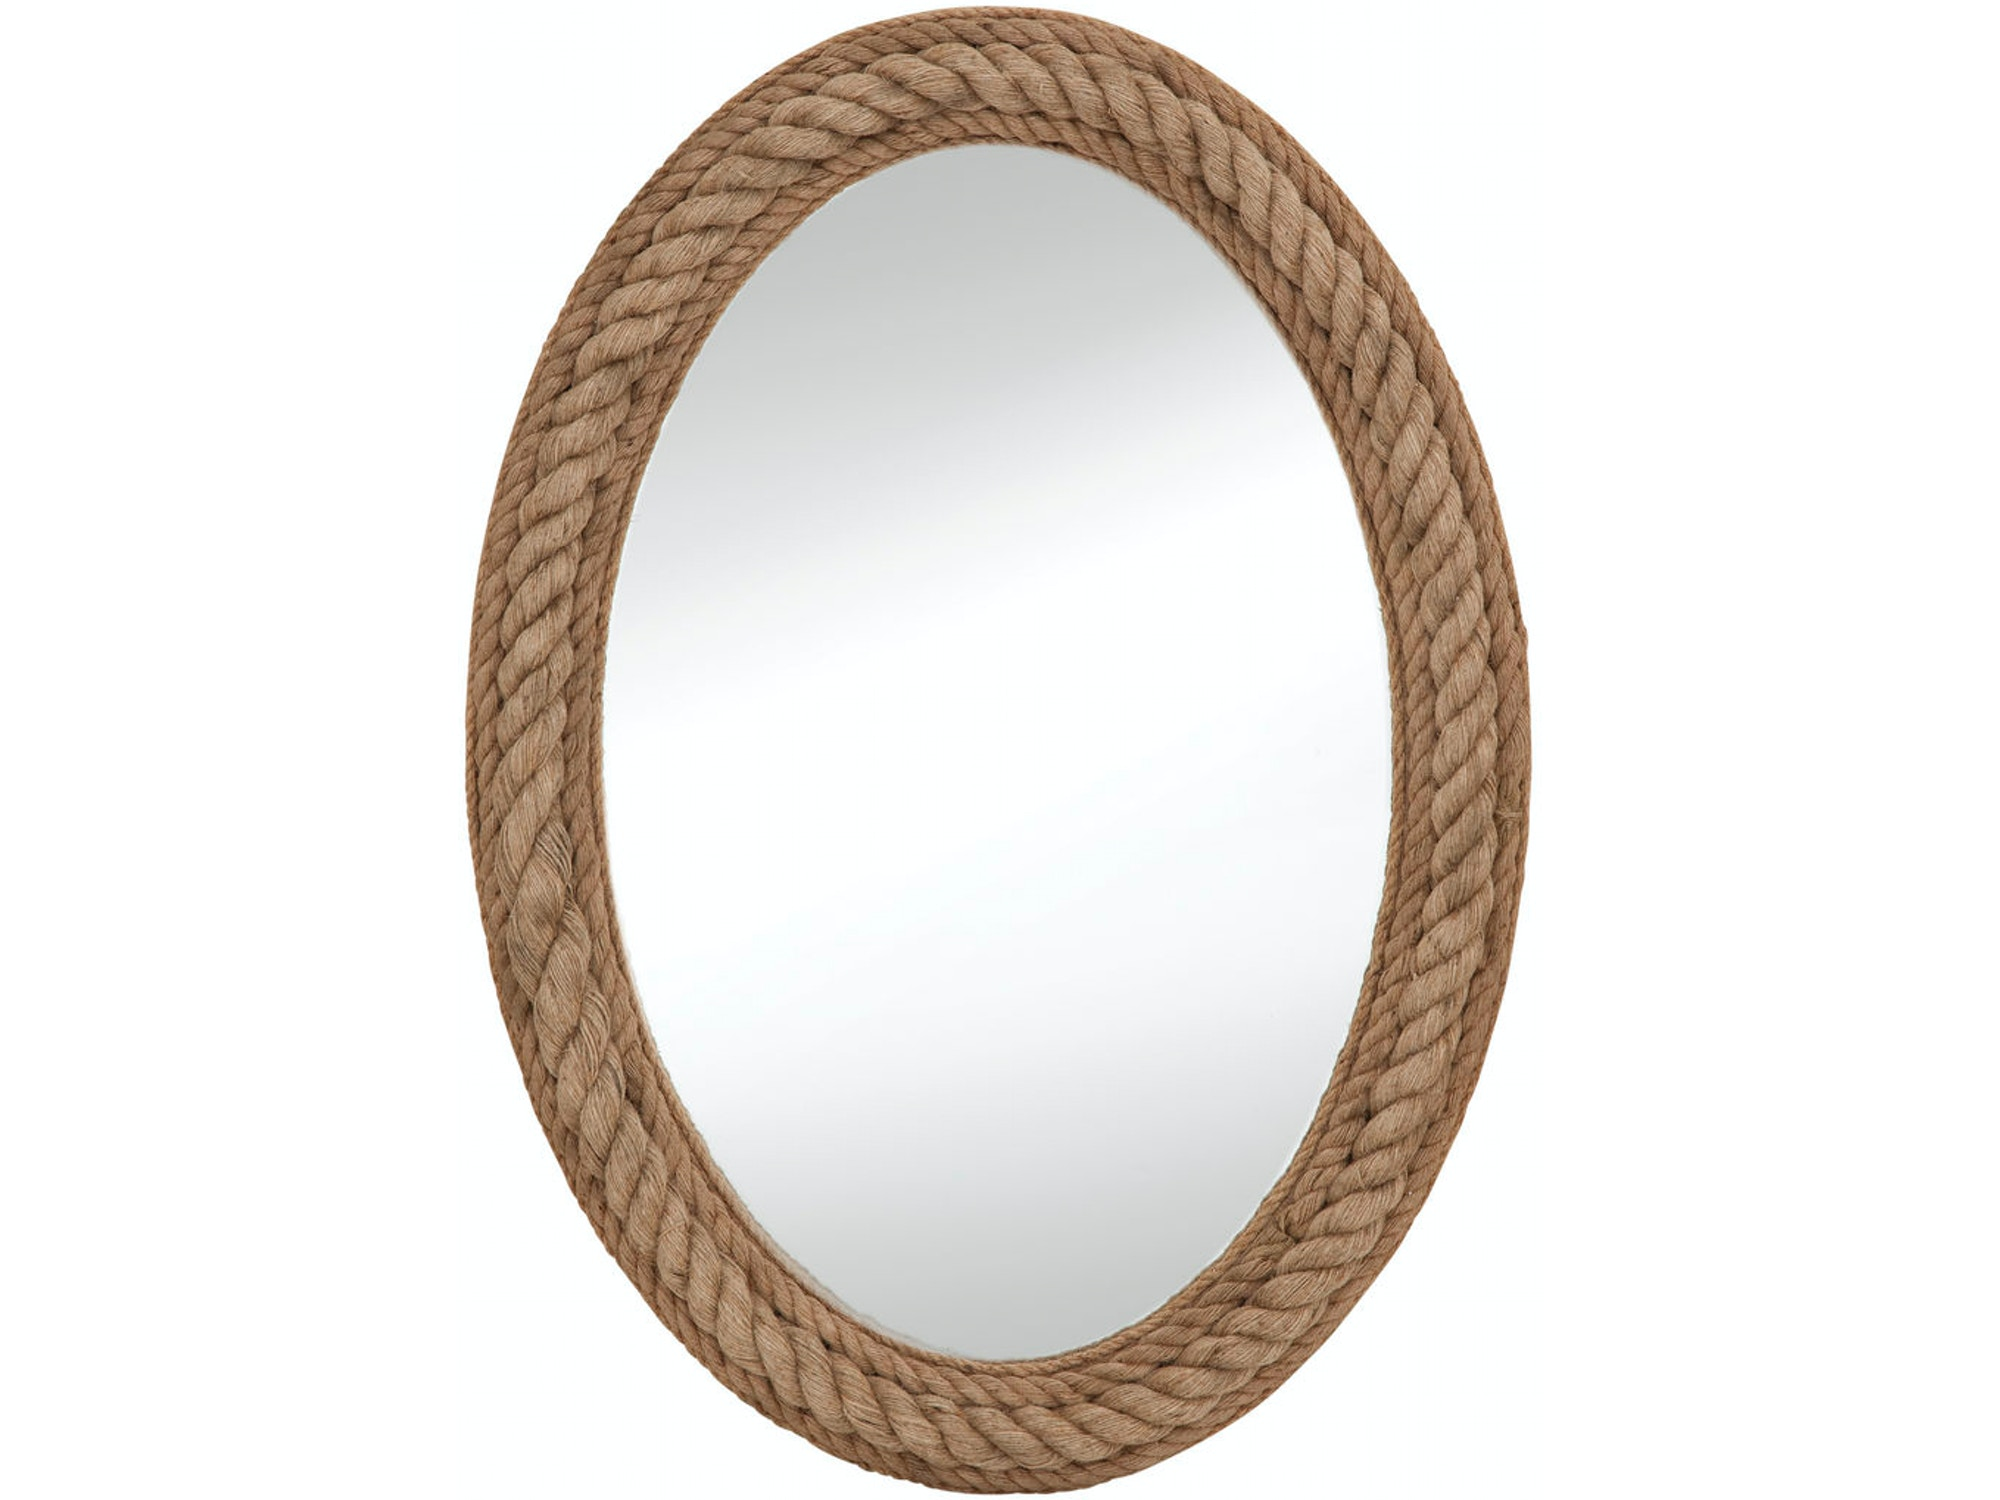 Rope Framed Mirror 050283